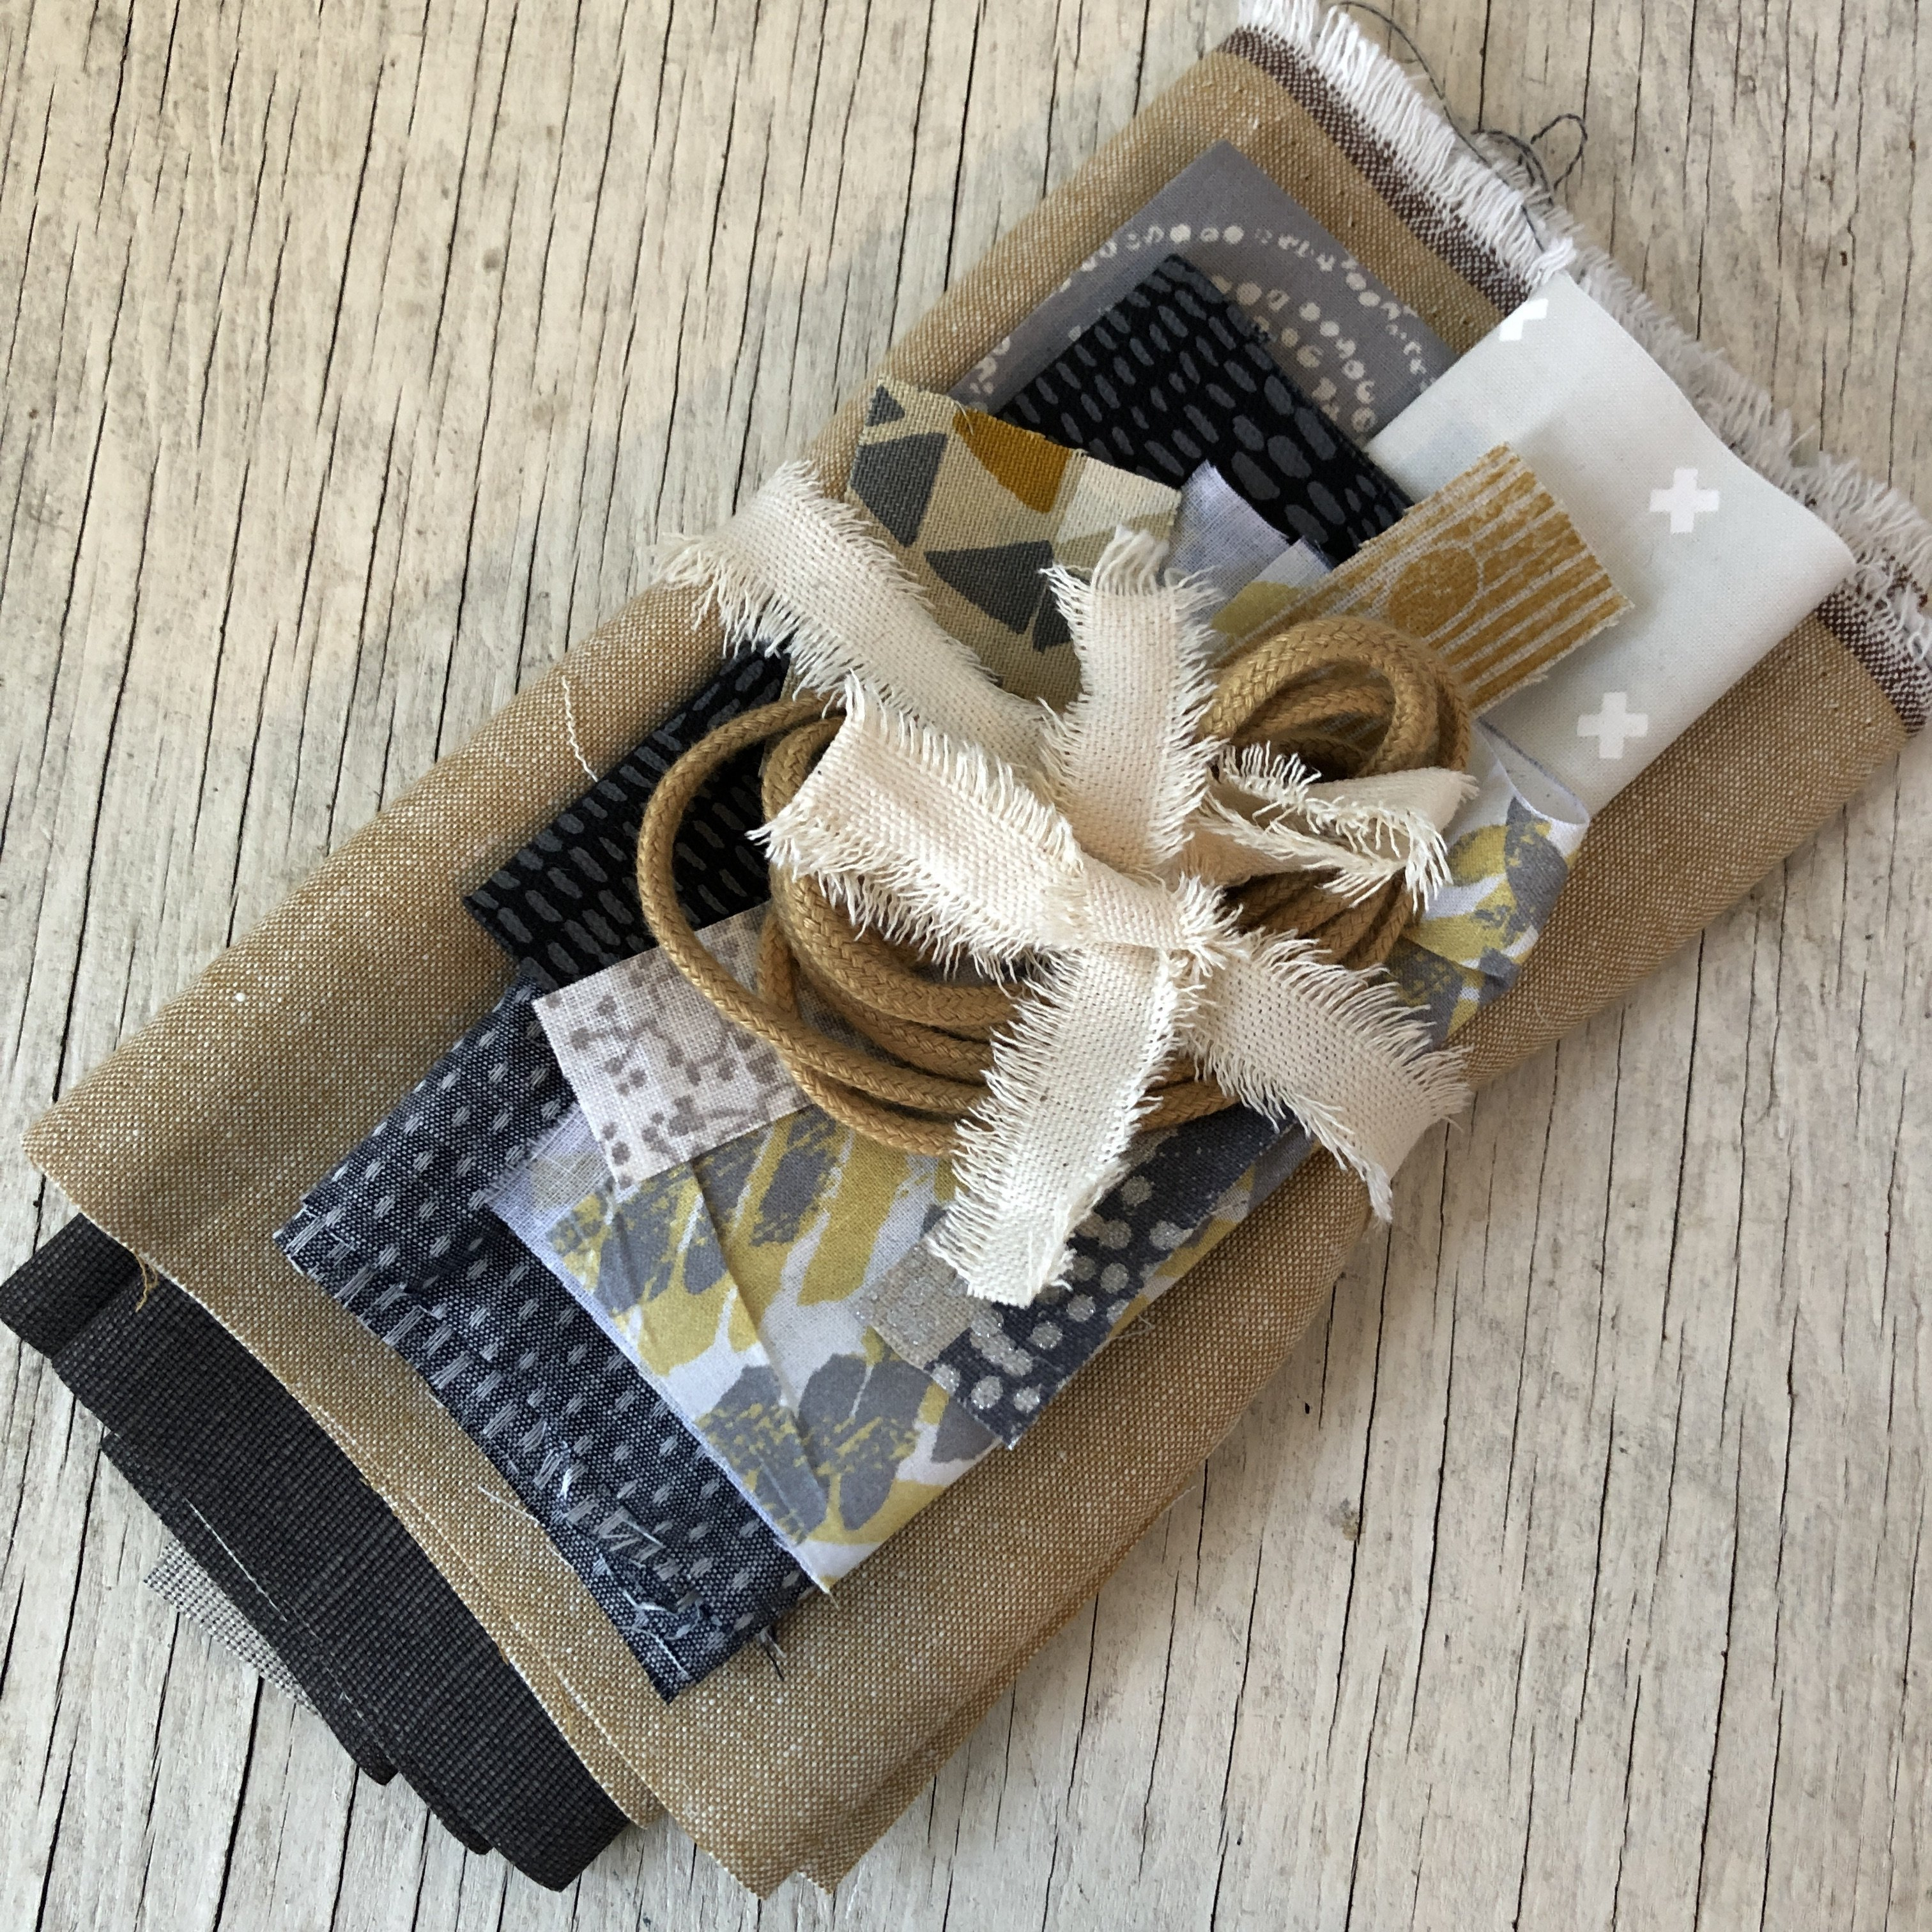 Japanese Rice Pouch Kit